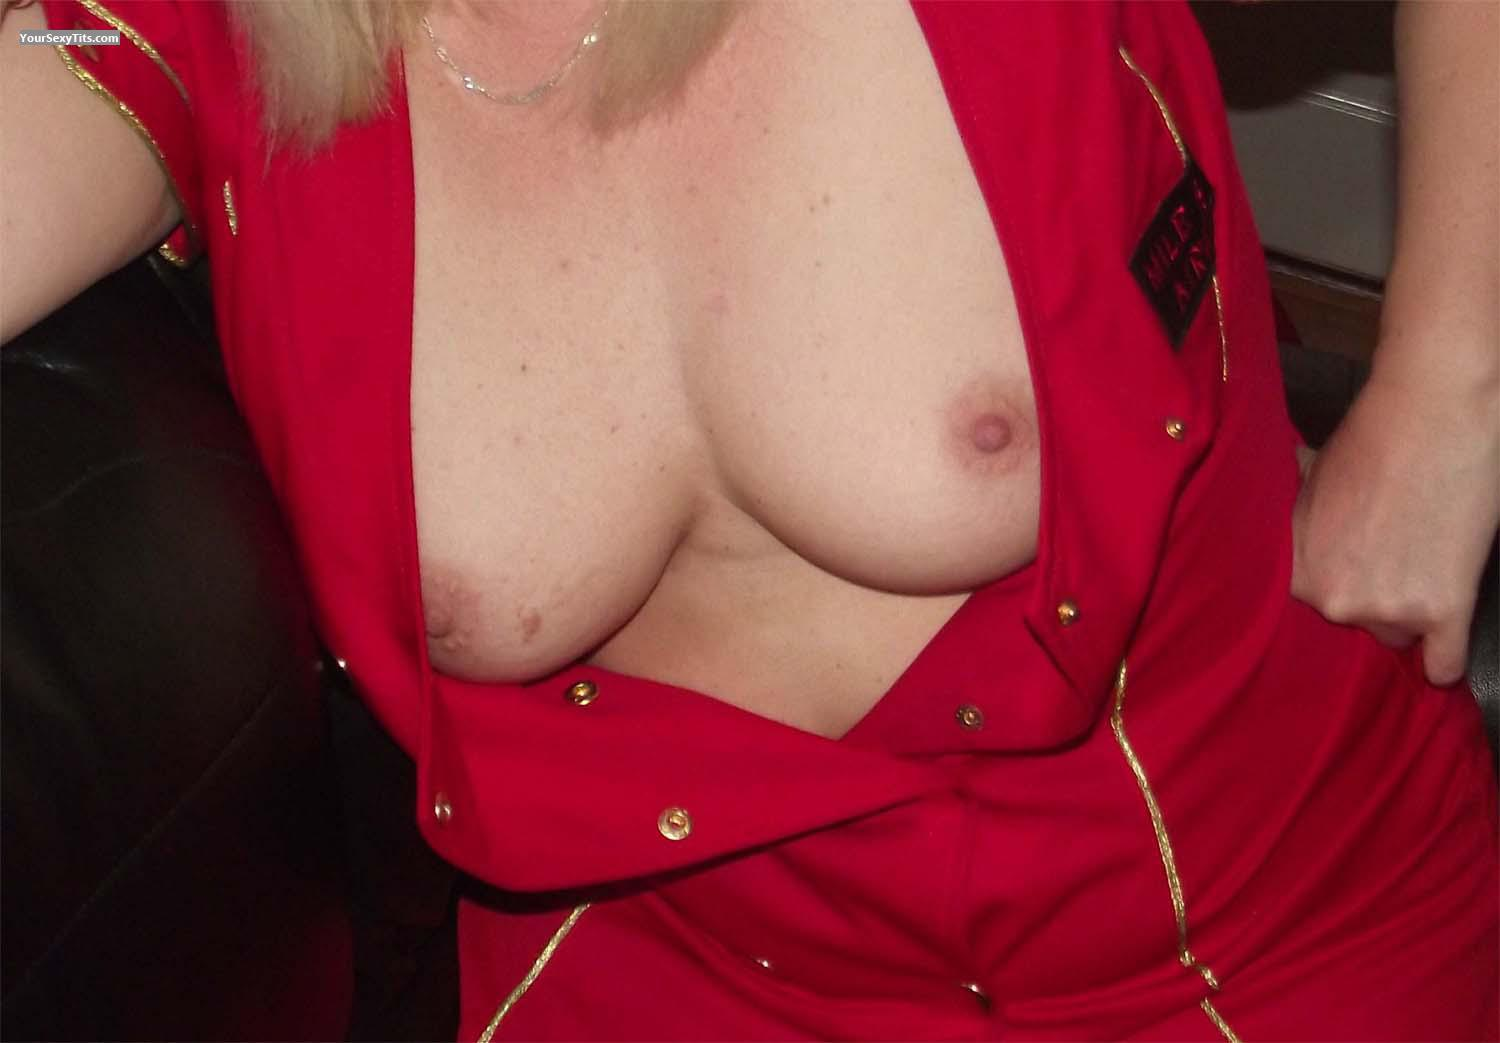 Tit Flash: Medium Tits - Uk-2 from United Kingdom